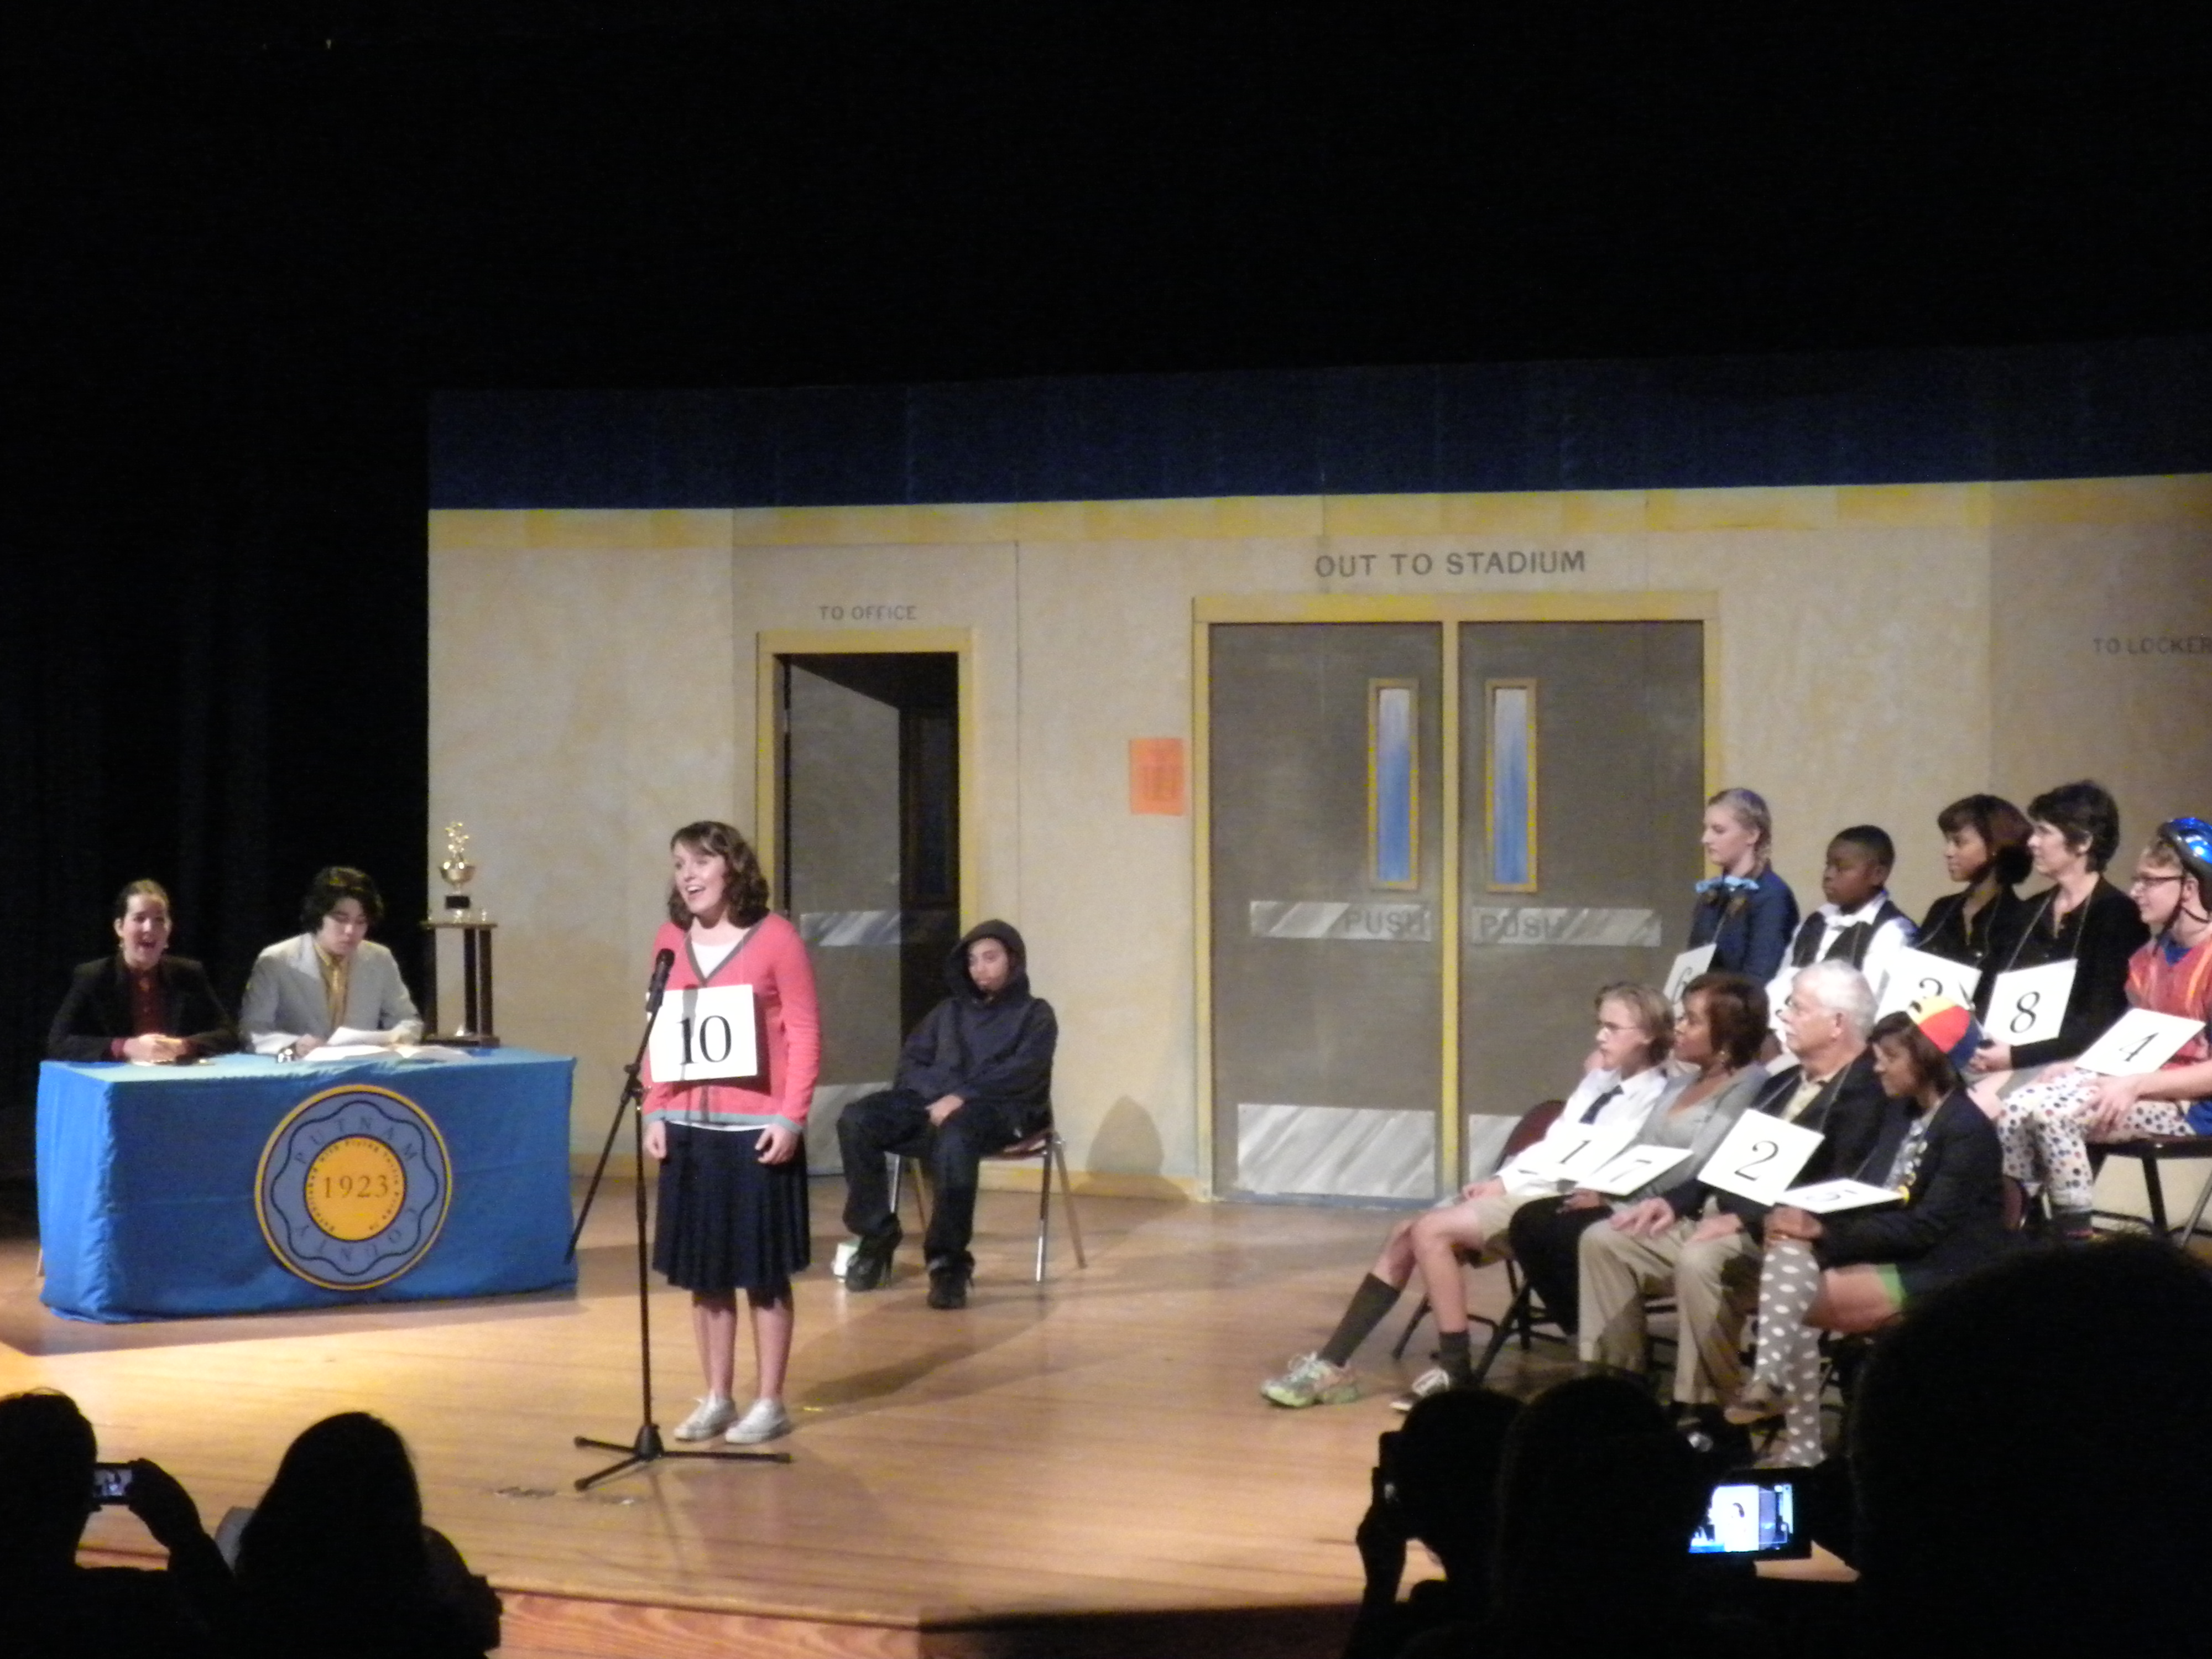 Junior Eliza Renner steps up to the microphone to put her spelling skills to the test as her character, Olive.